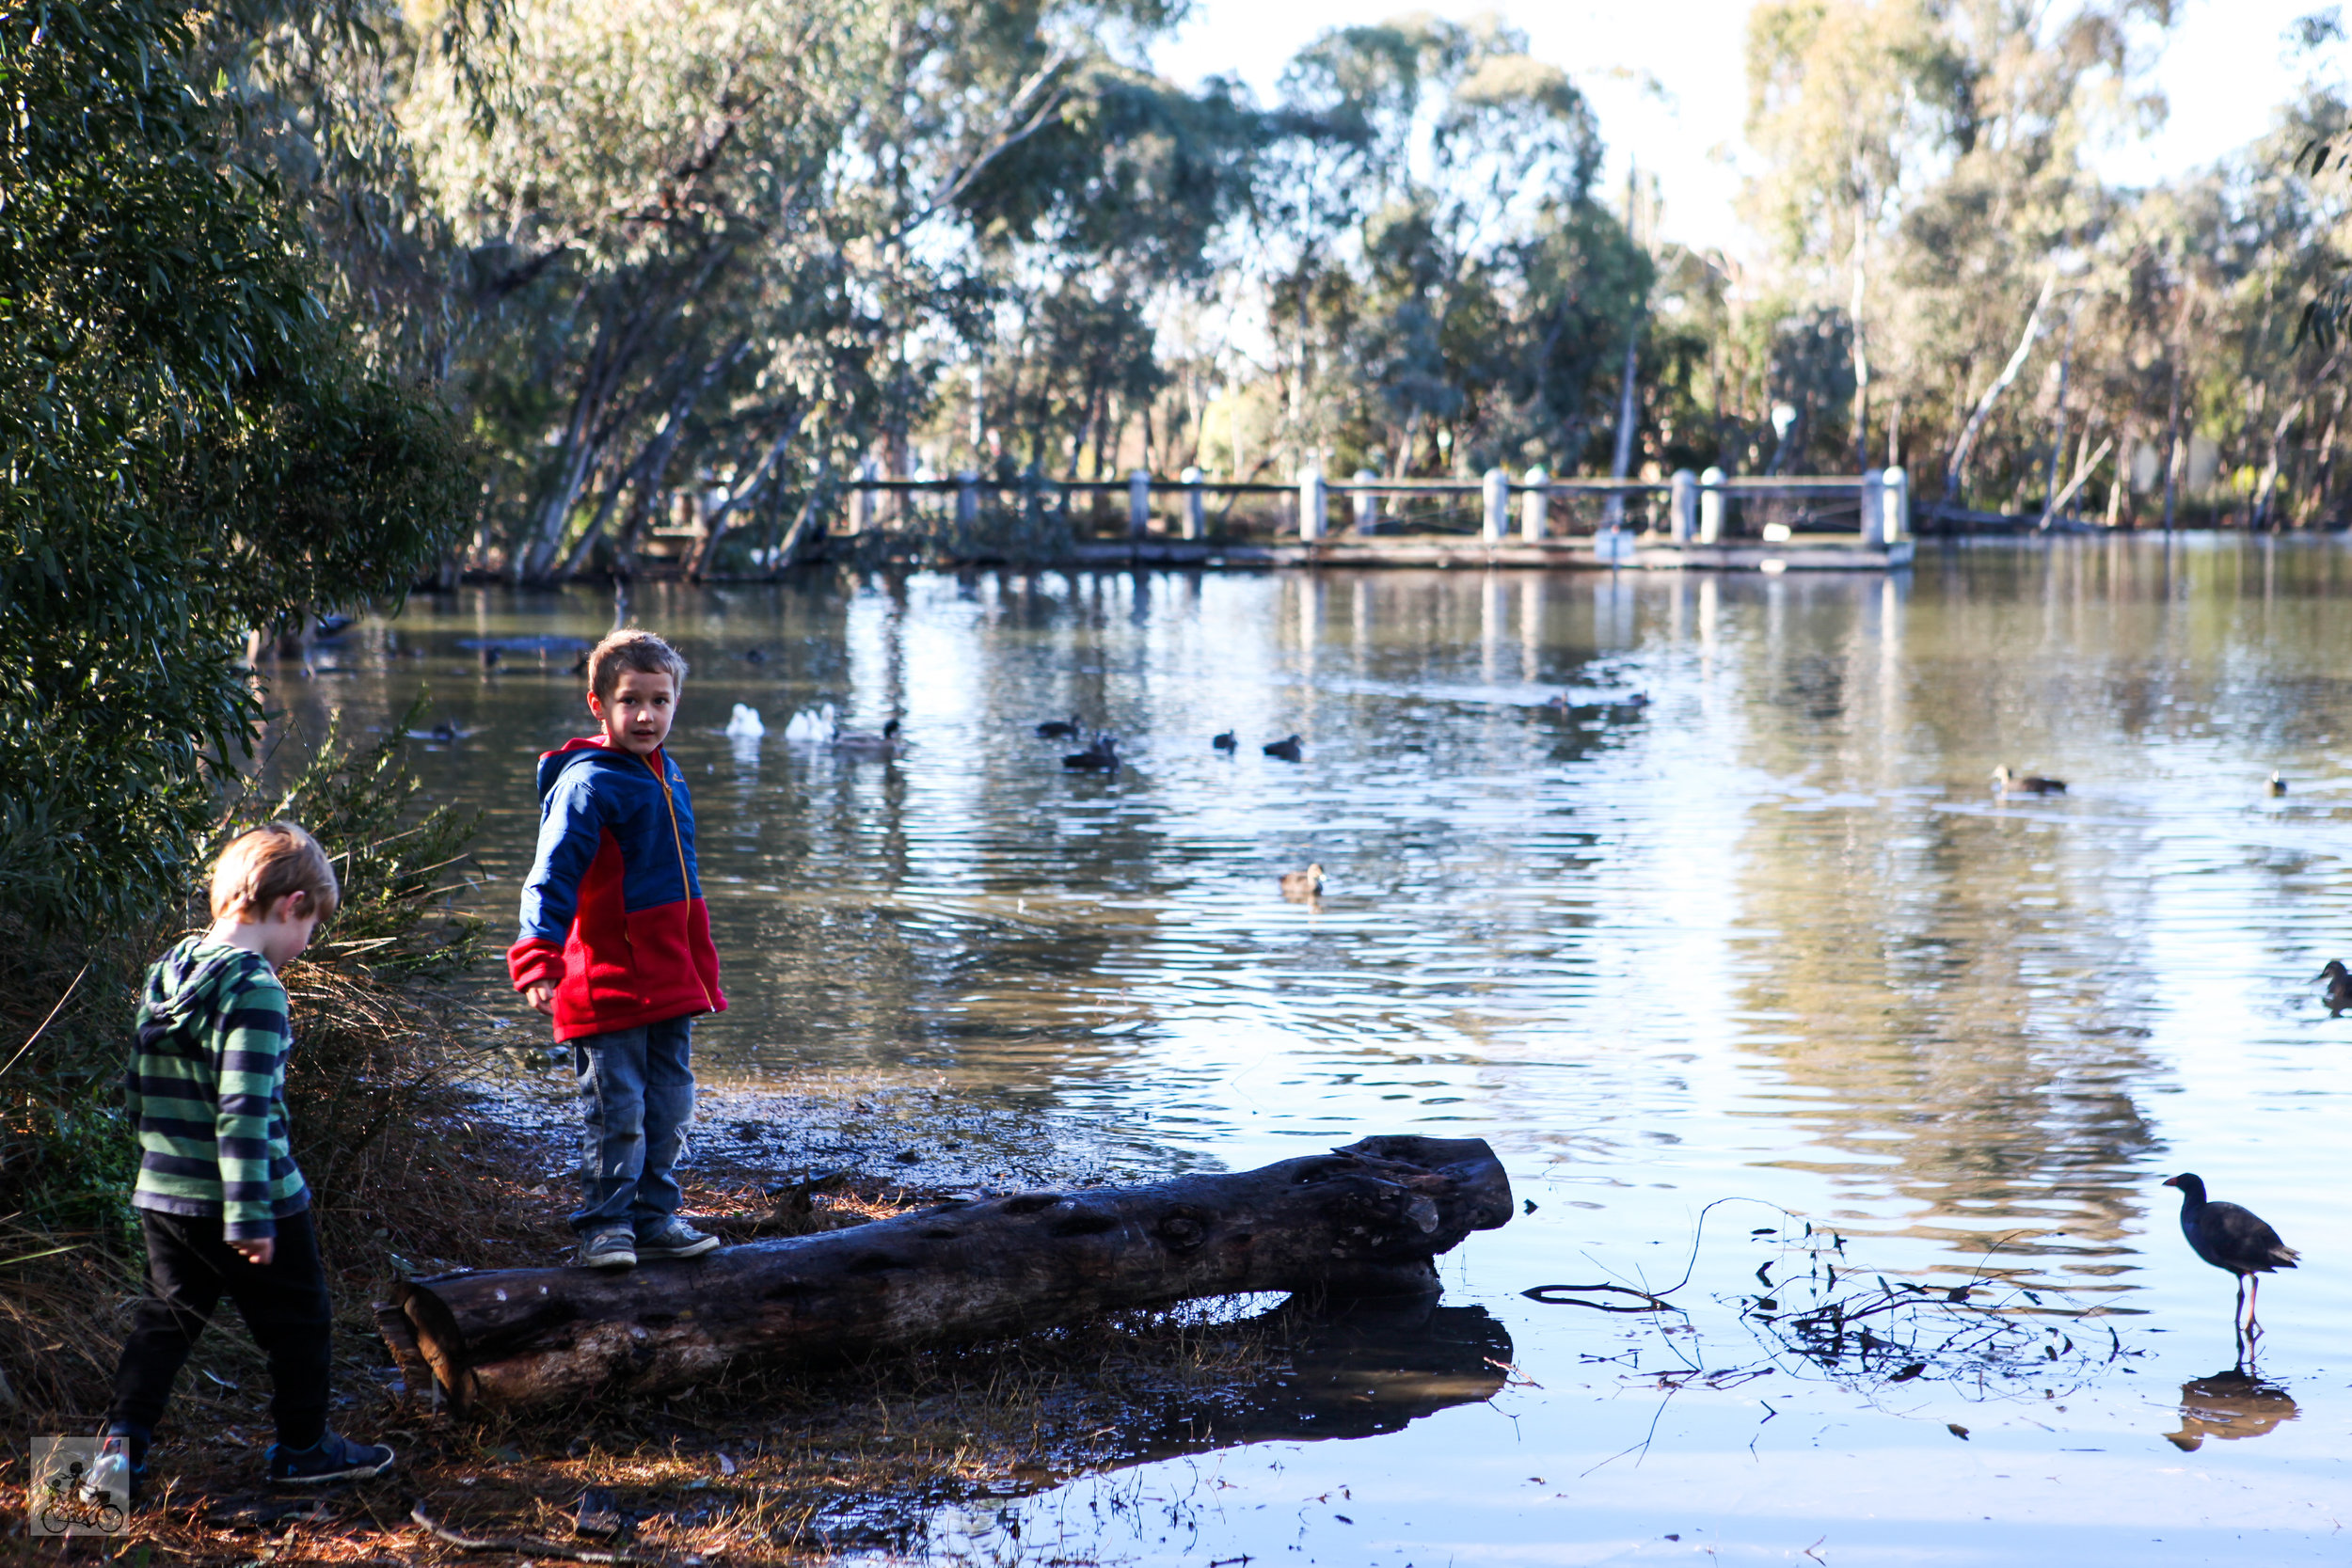 redleap reserve, mill park - mamma knows north